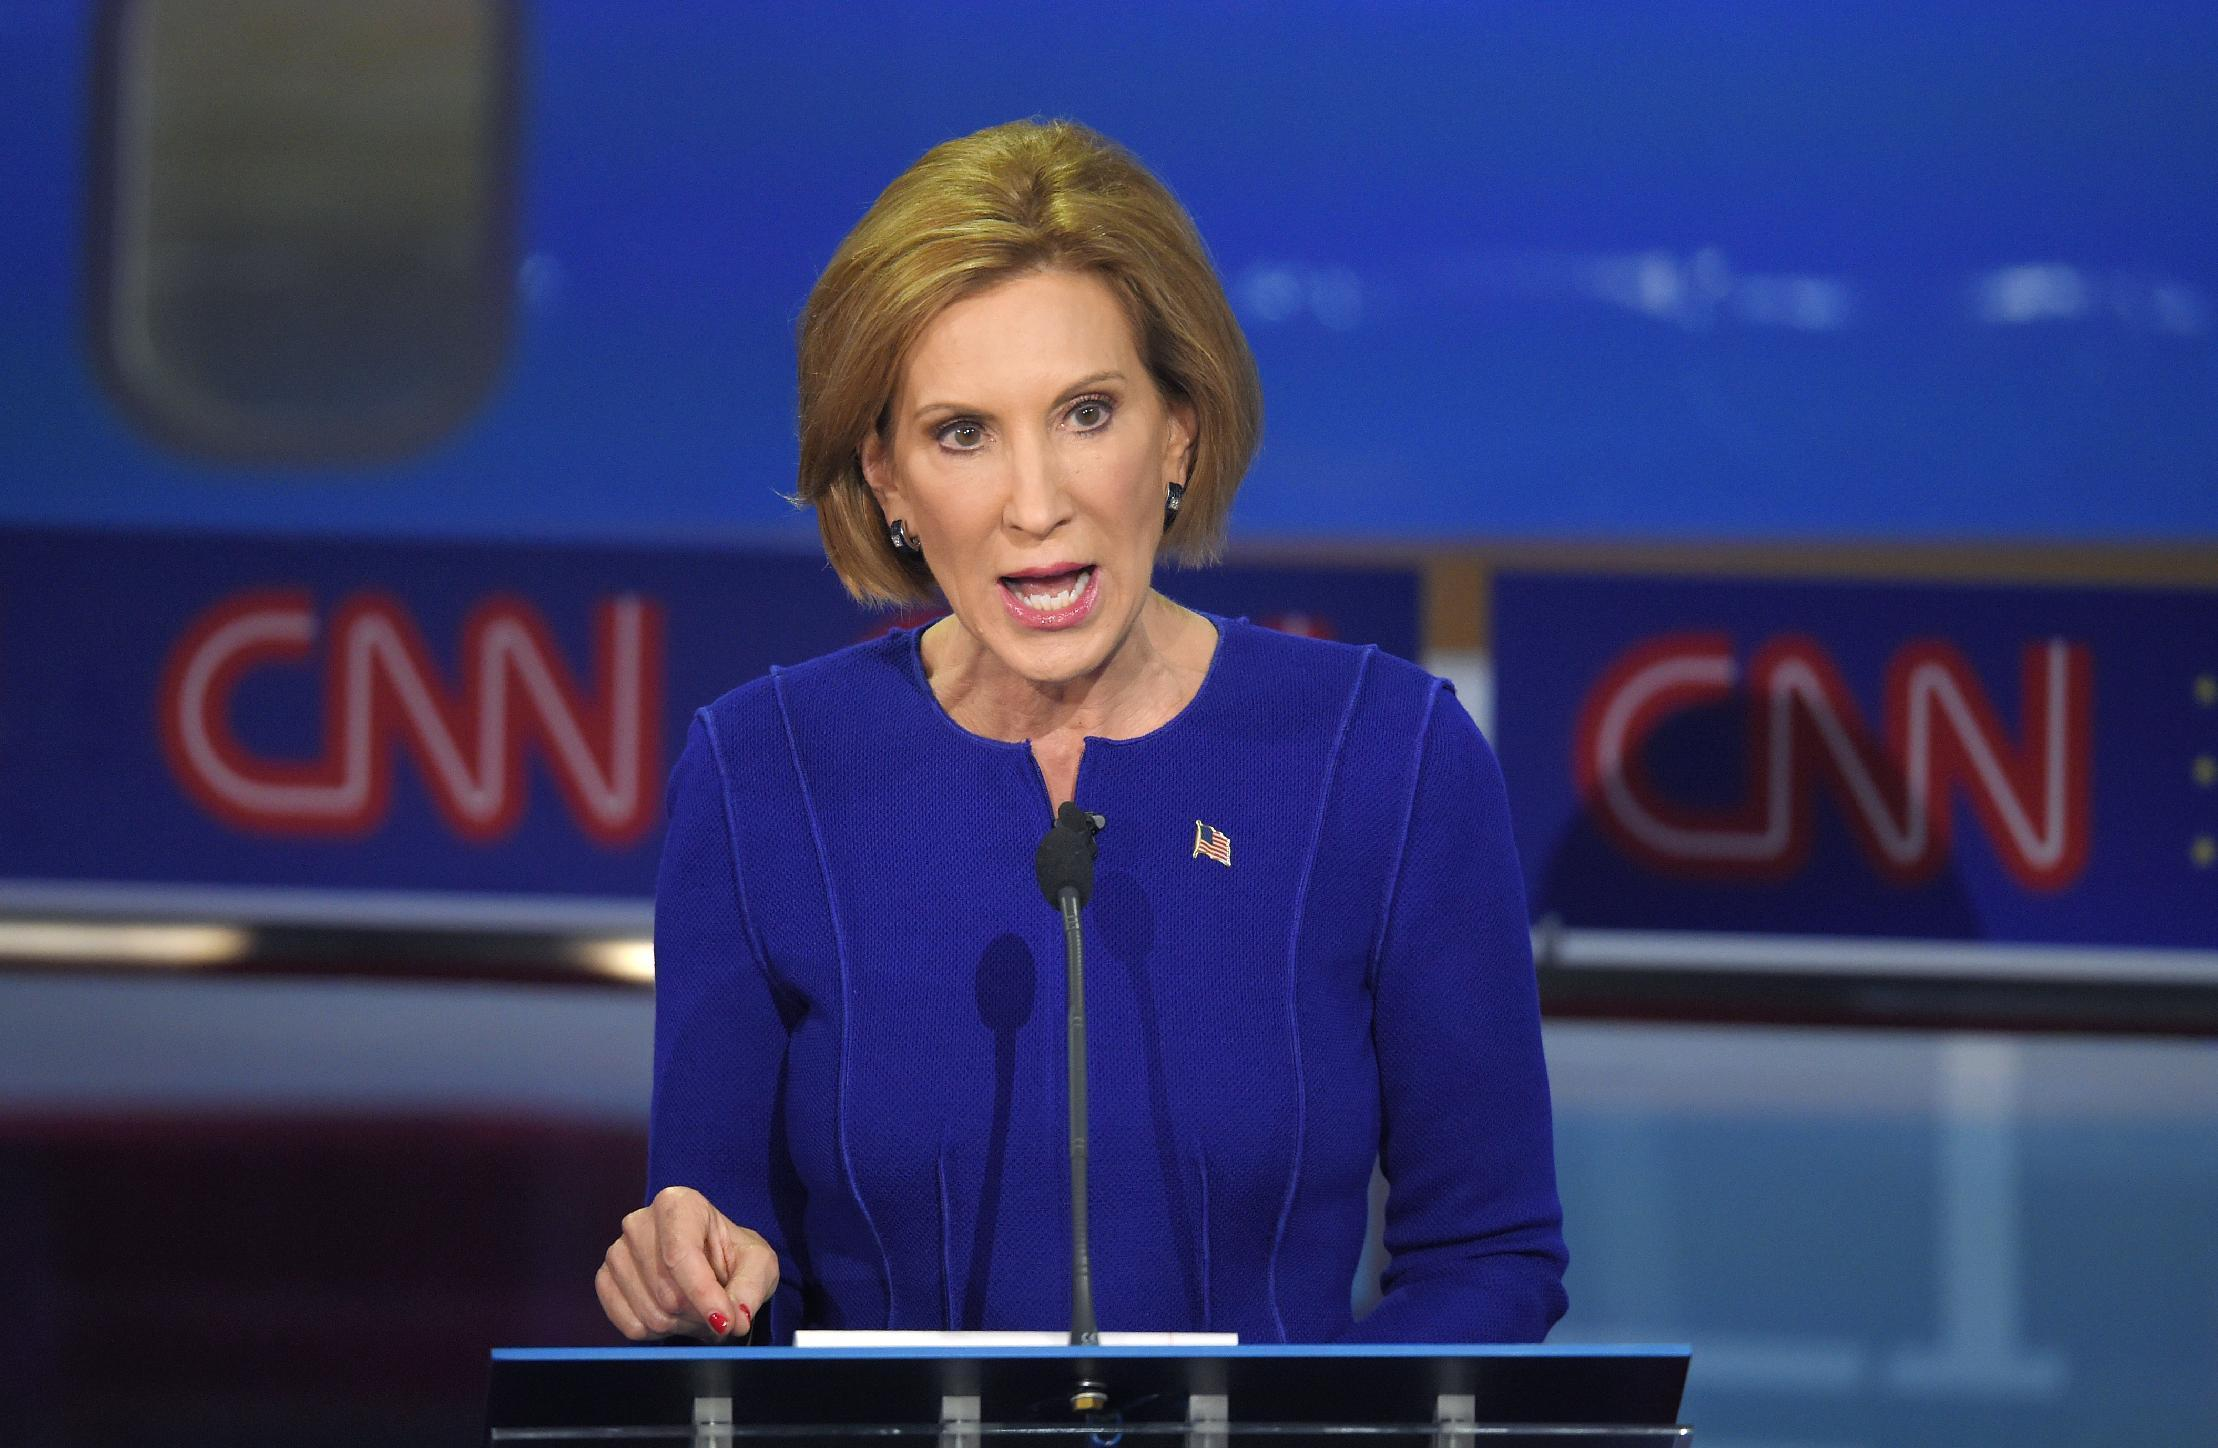 After two days of silence, GOP candidates respond to Planned Parenthood shootings